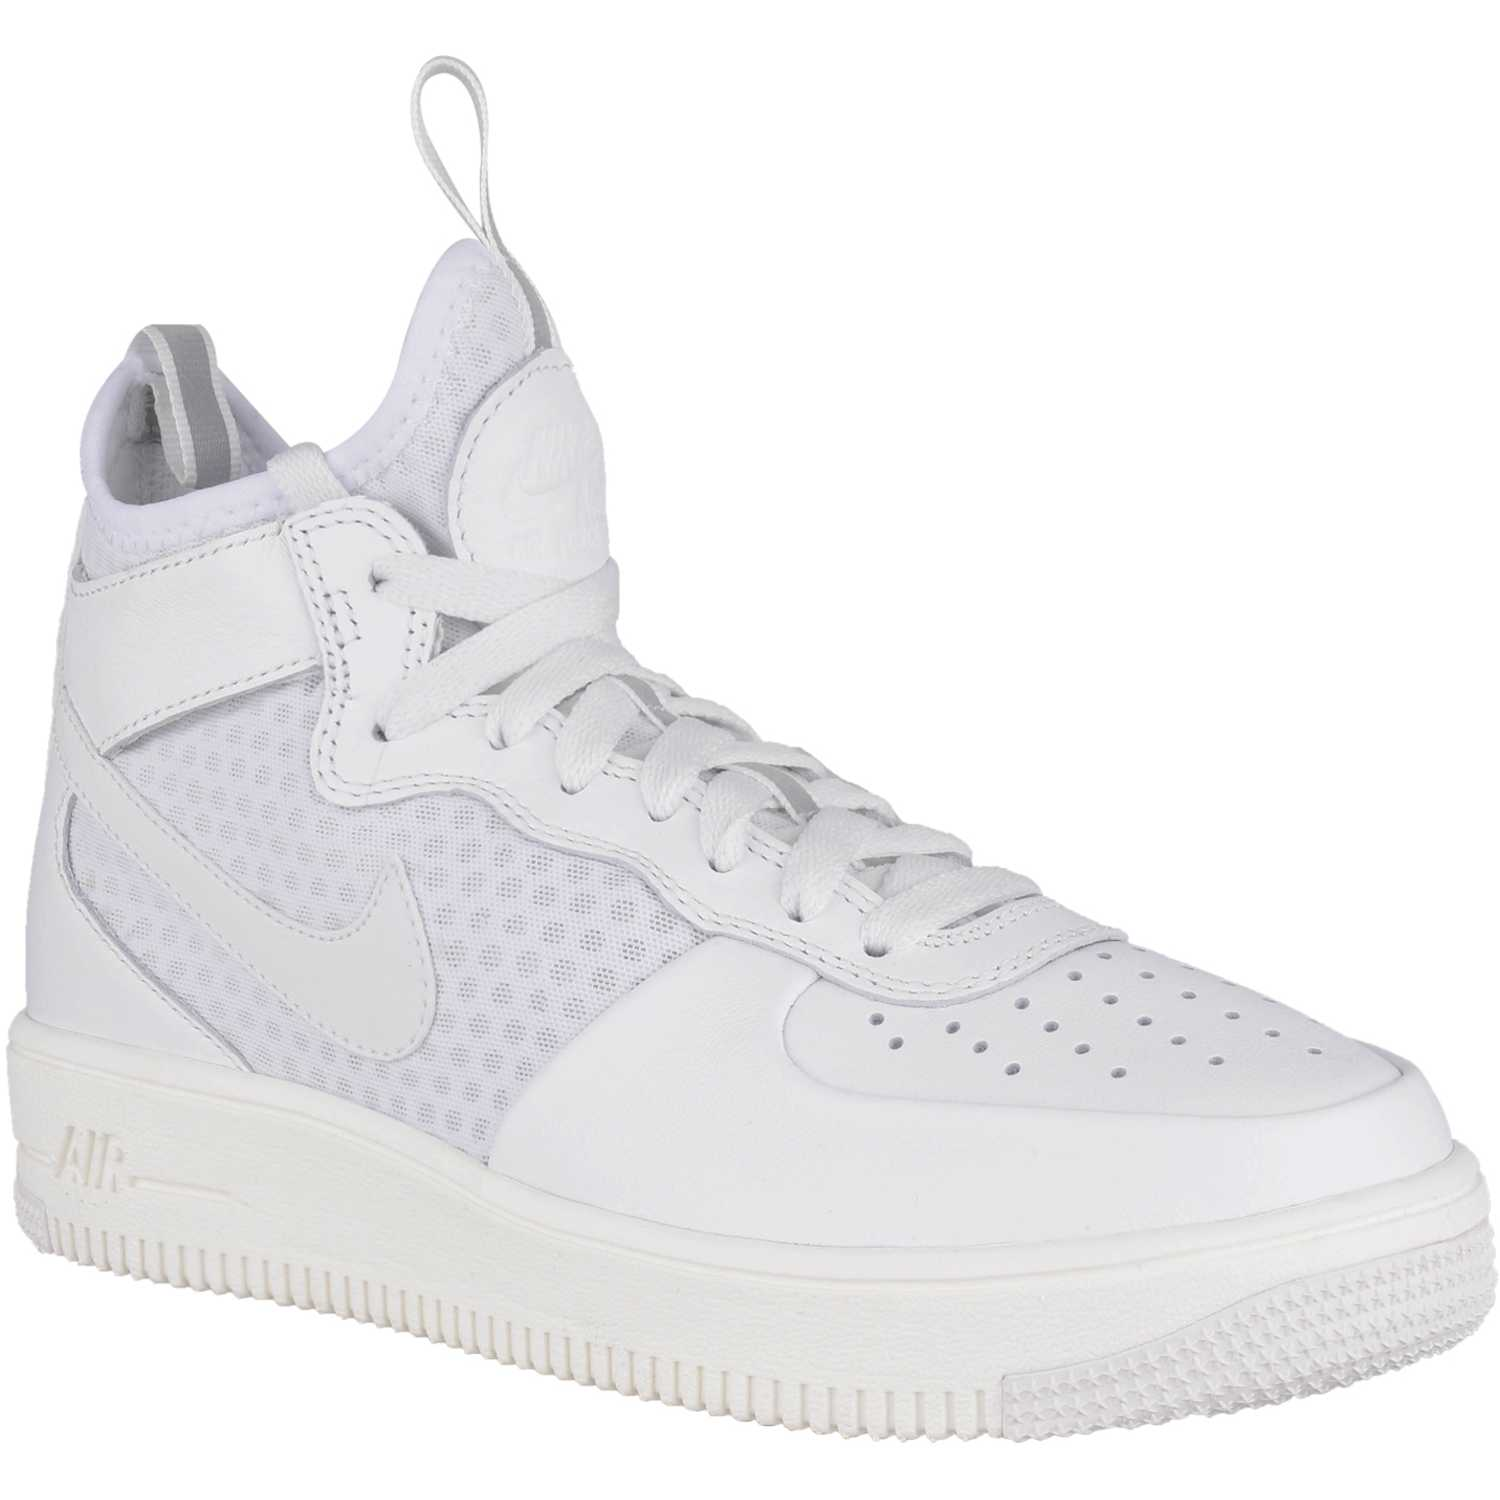 brand new 9a637 c7b77 Zapatilla de Mujer Nike Blanco wmns air force 1 ultraforce mid ...